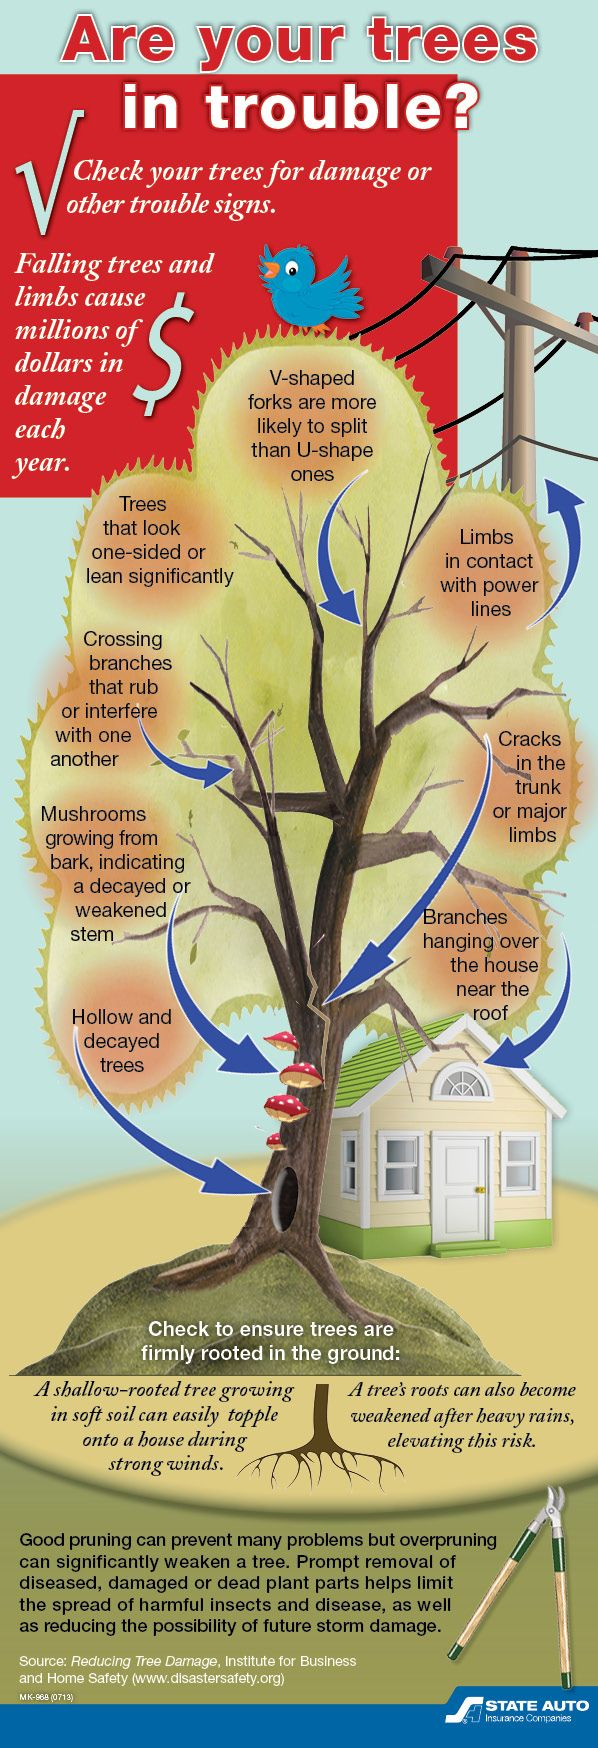 Some trees are more prone to storm damage than others.  How to check your trees for damage or trouble signs.